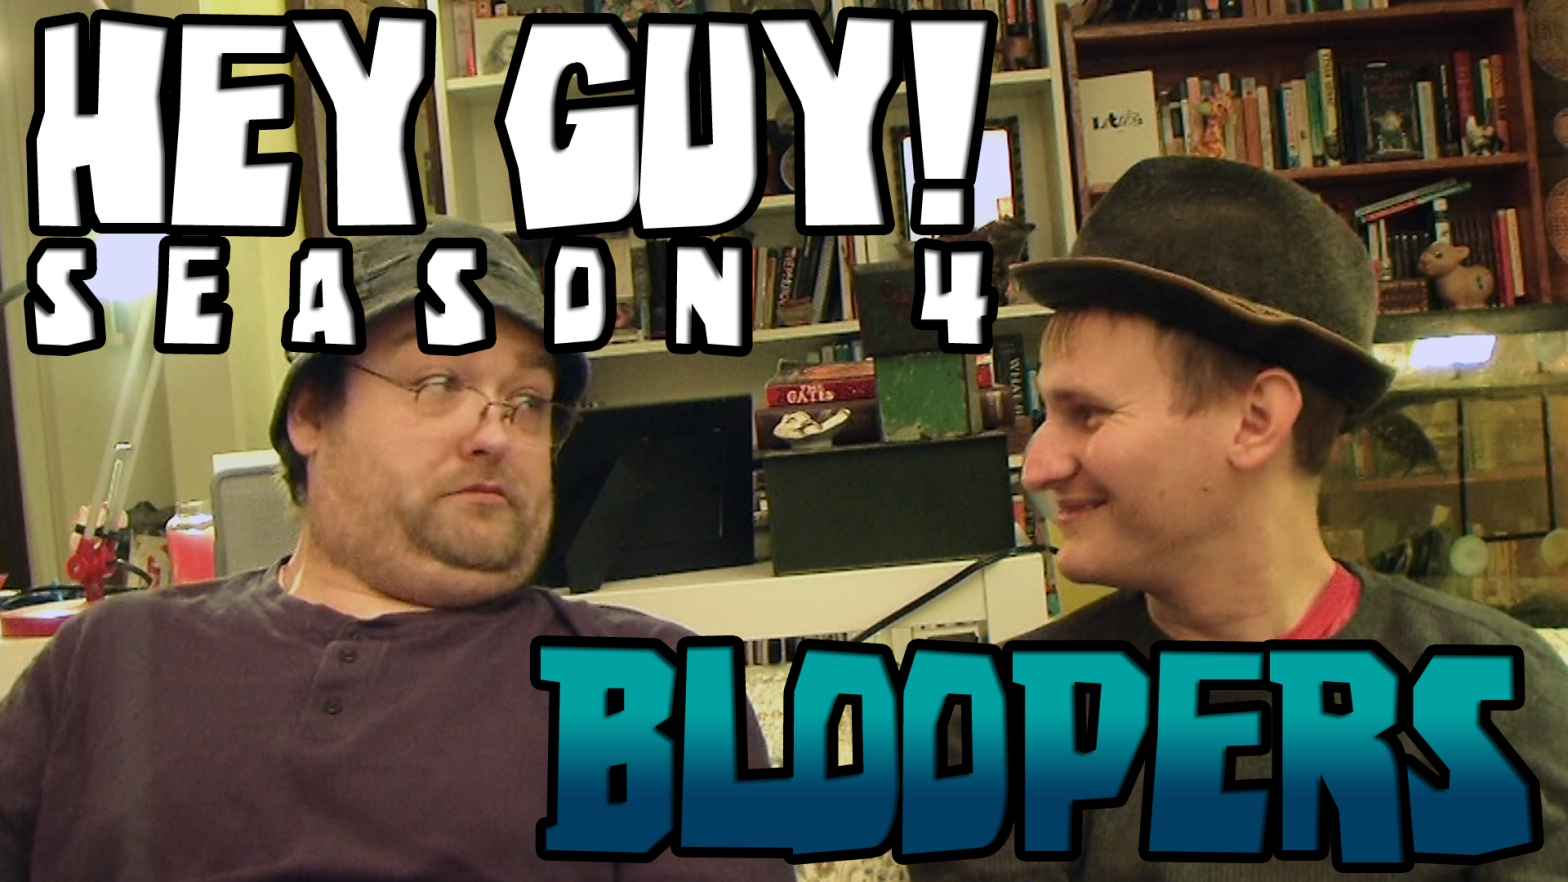 Bloopers from Hey Guy! Season 4